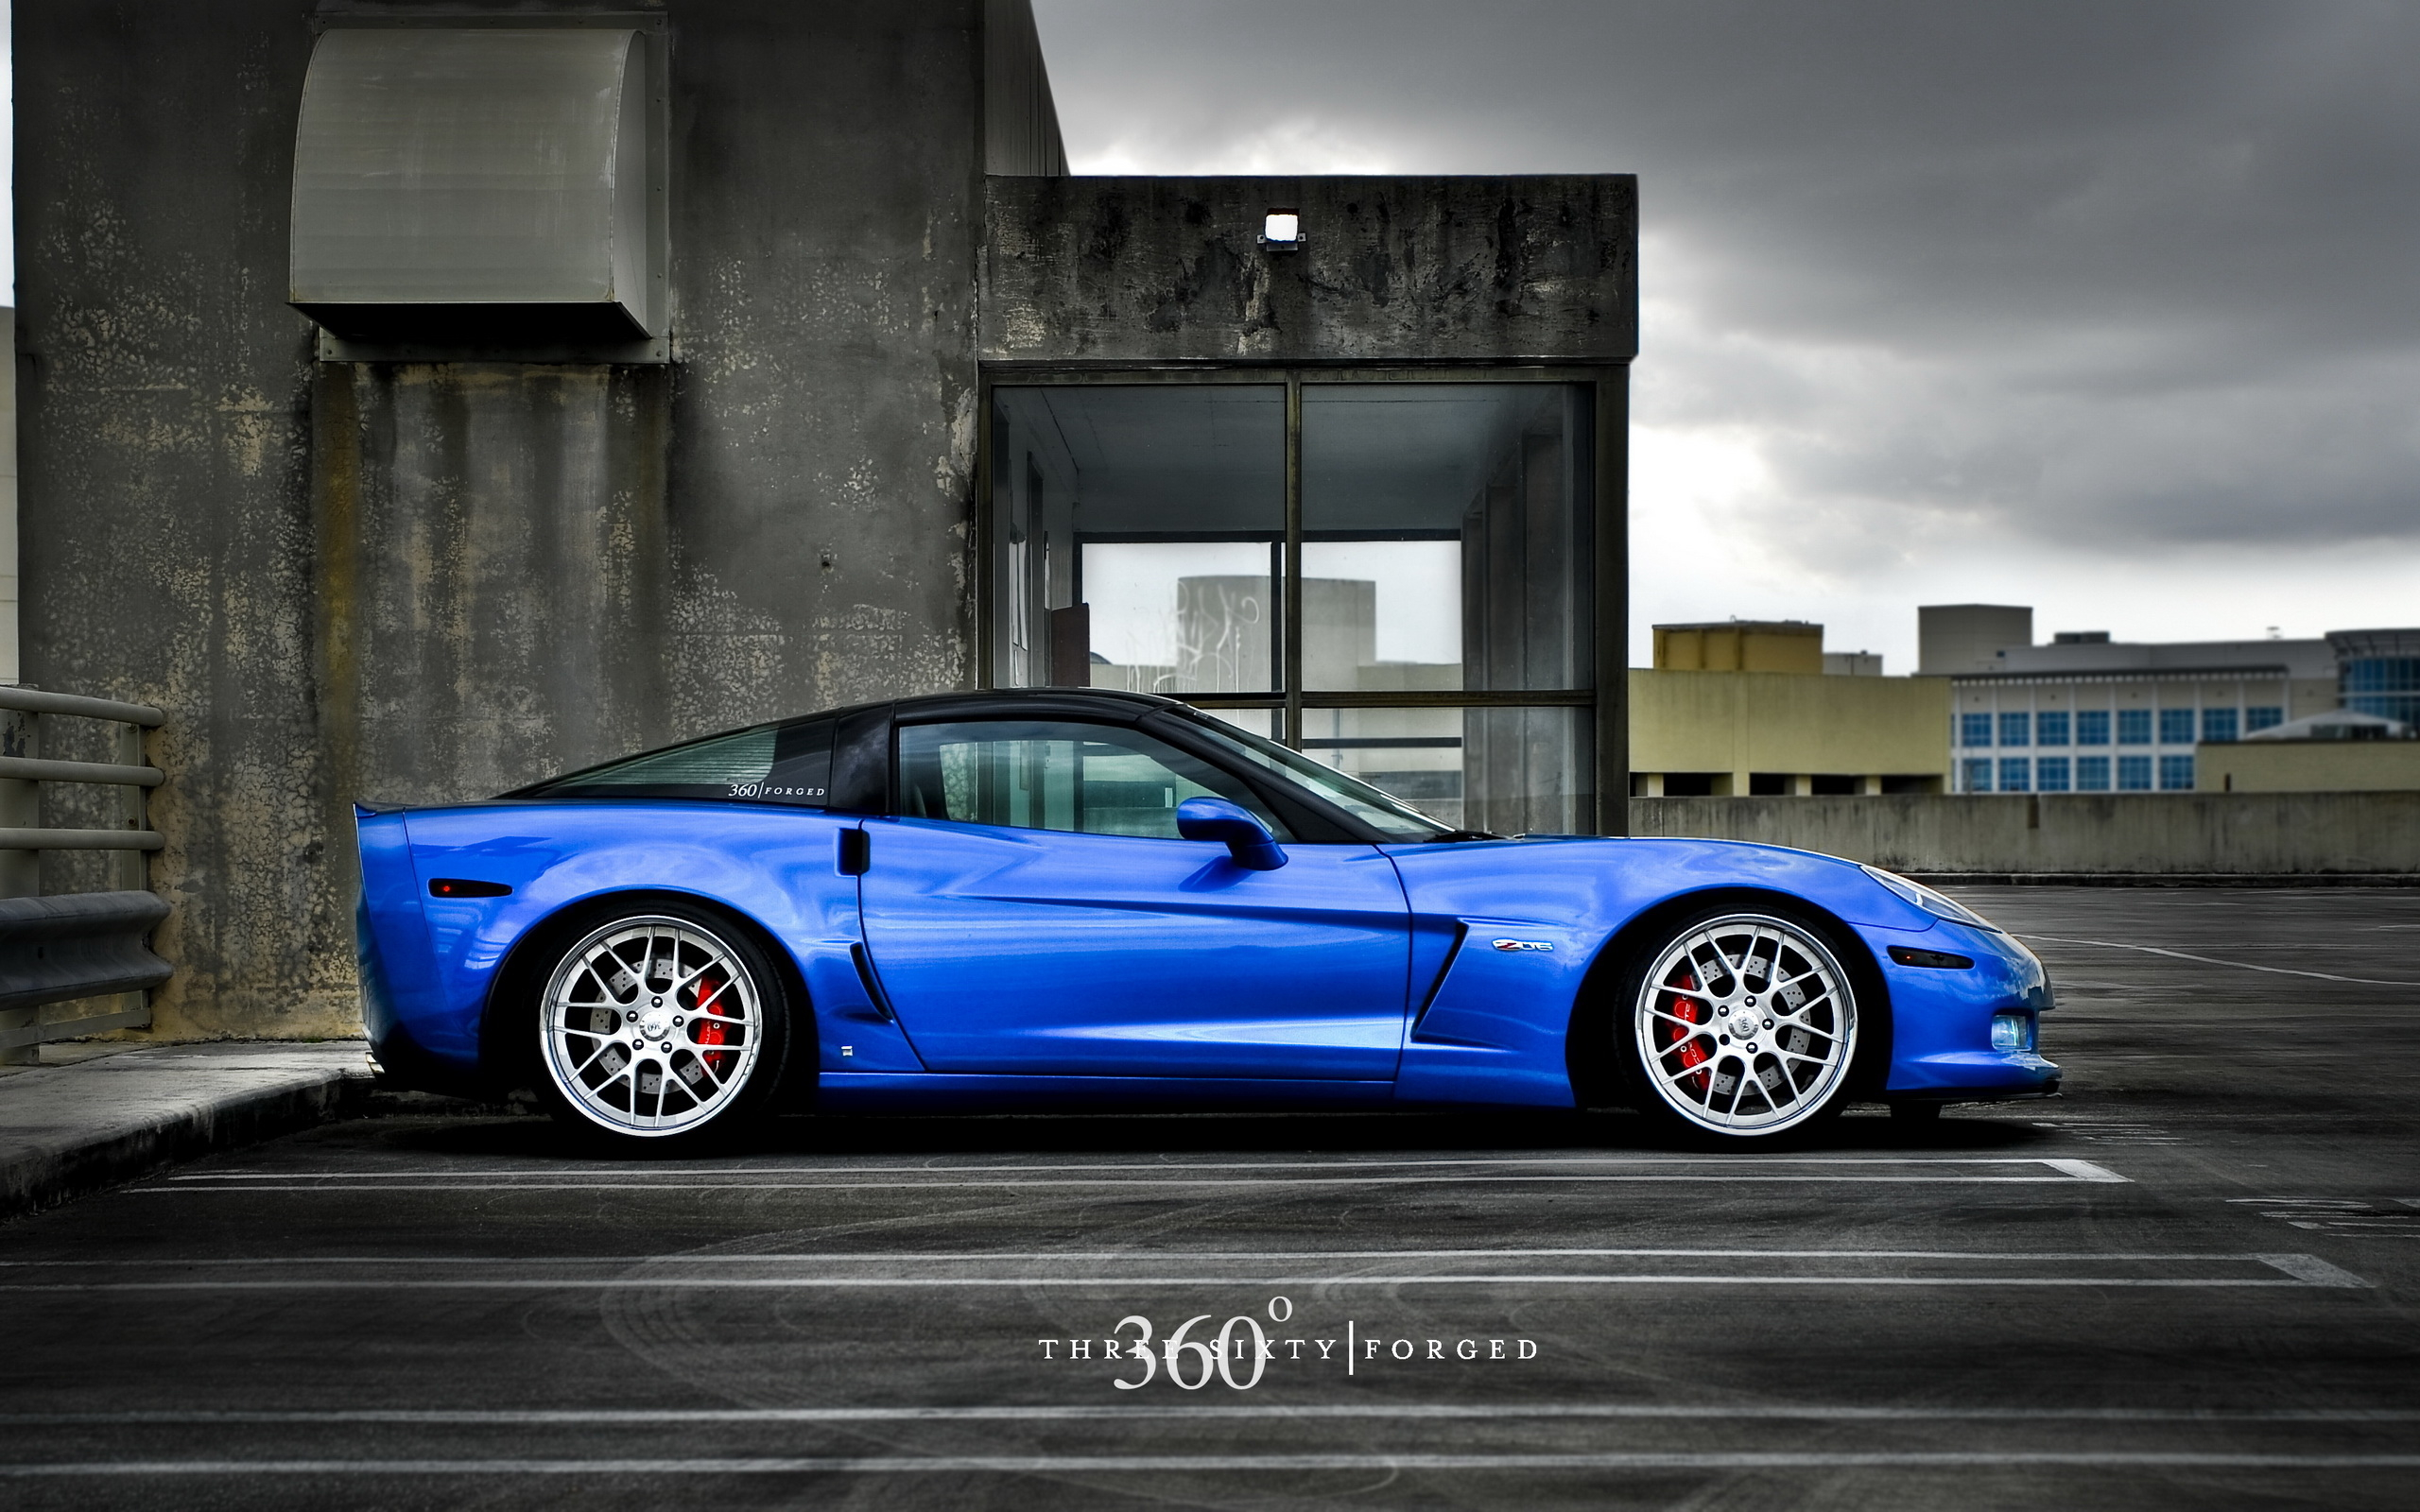 Chevrolet-Corvette-Z06 wallpapers and images - wallpapers, pictures ...